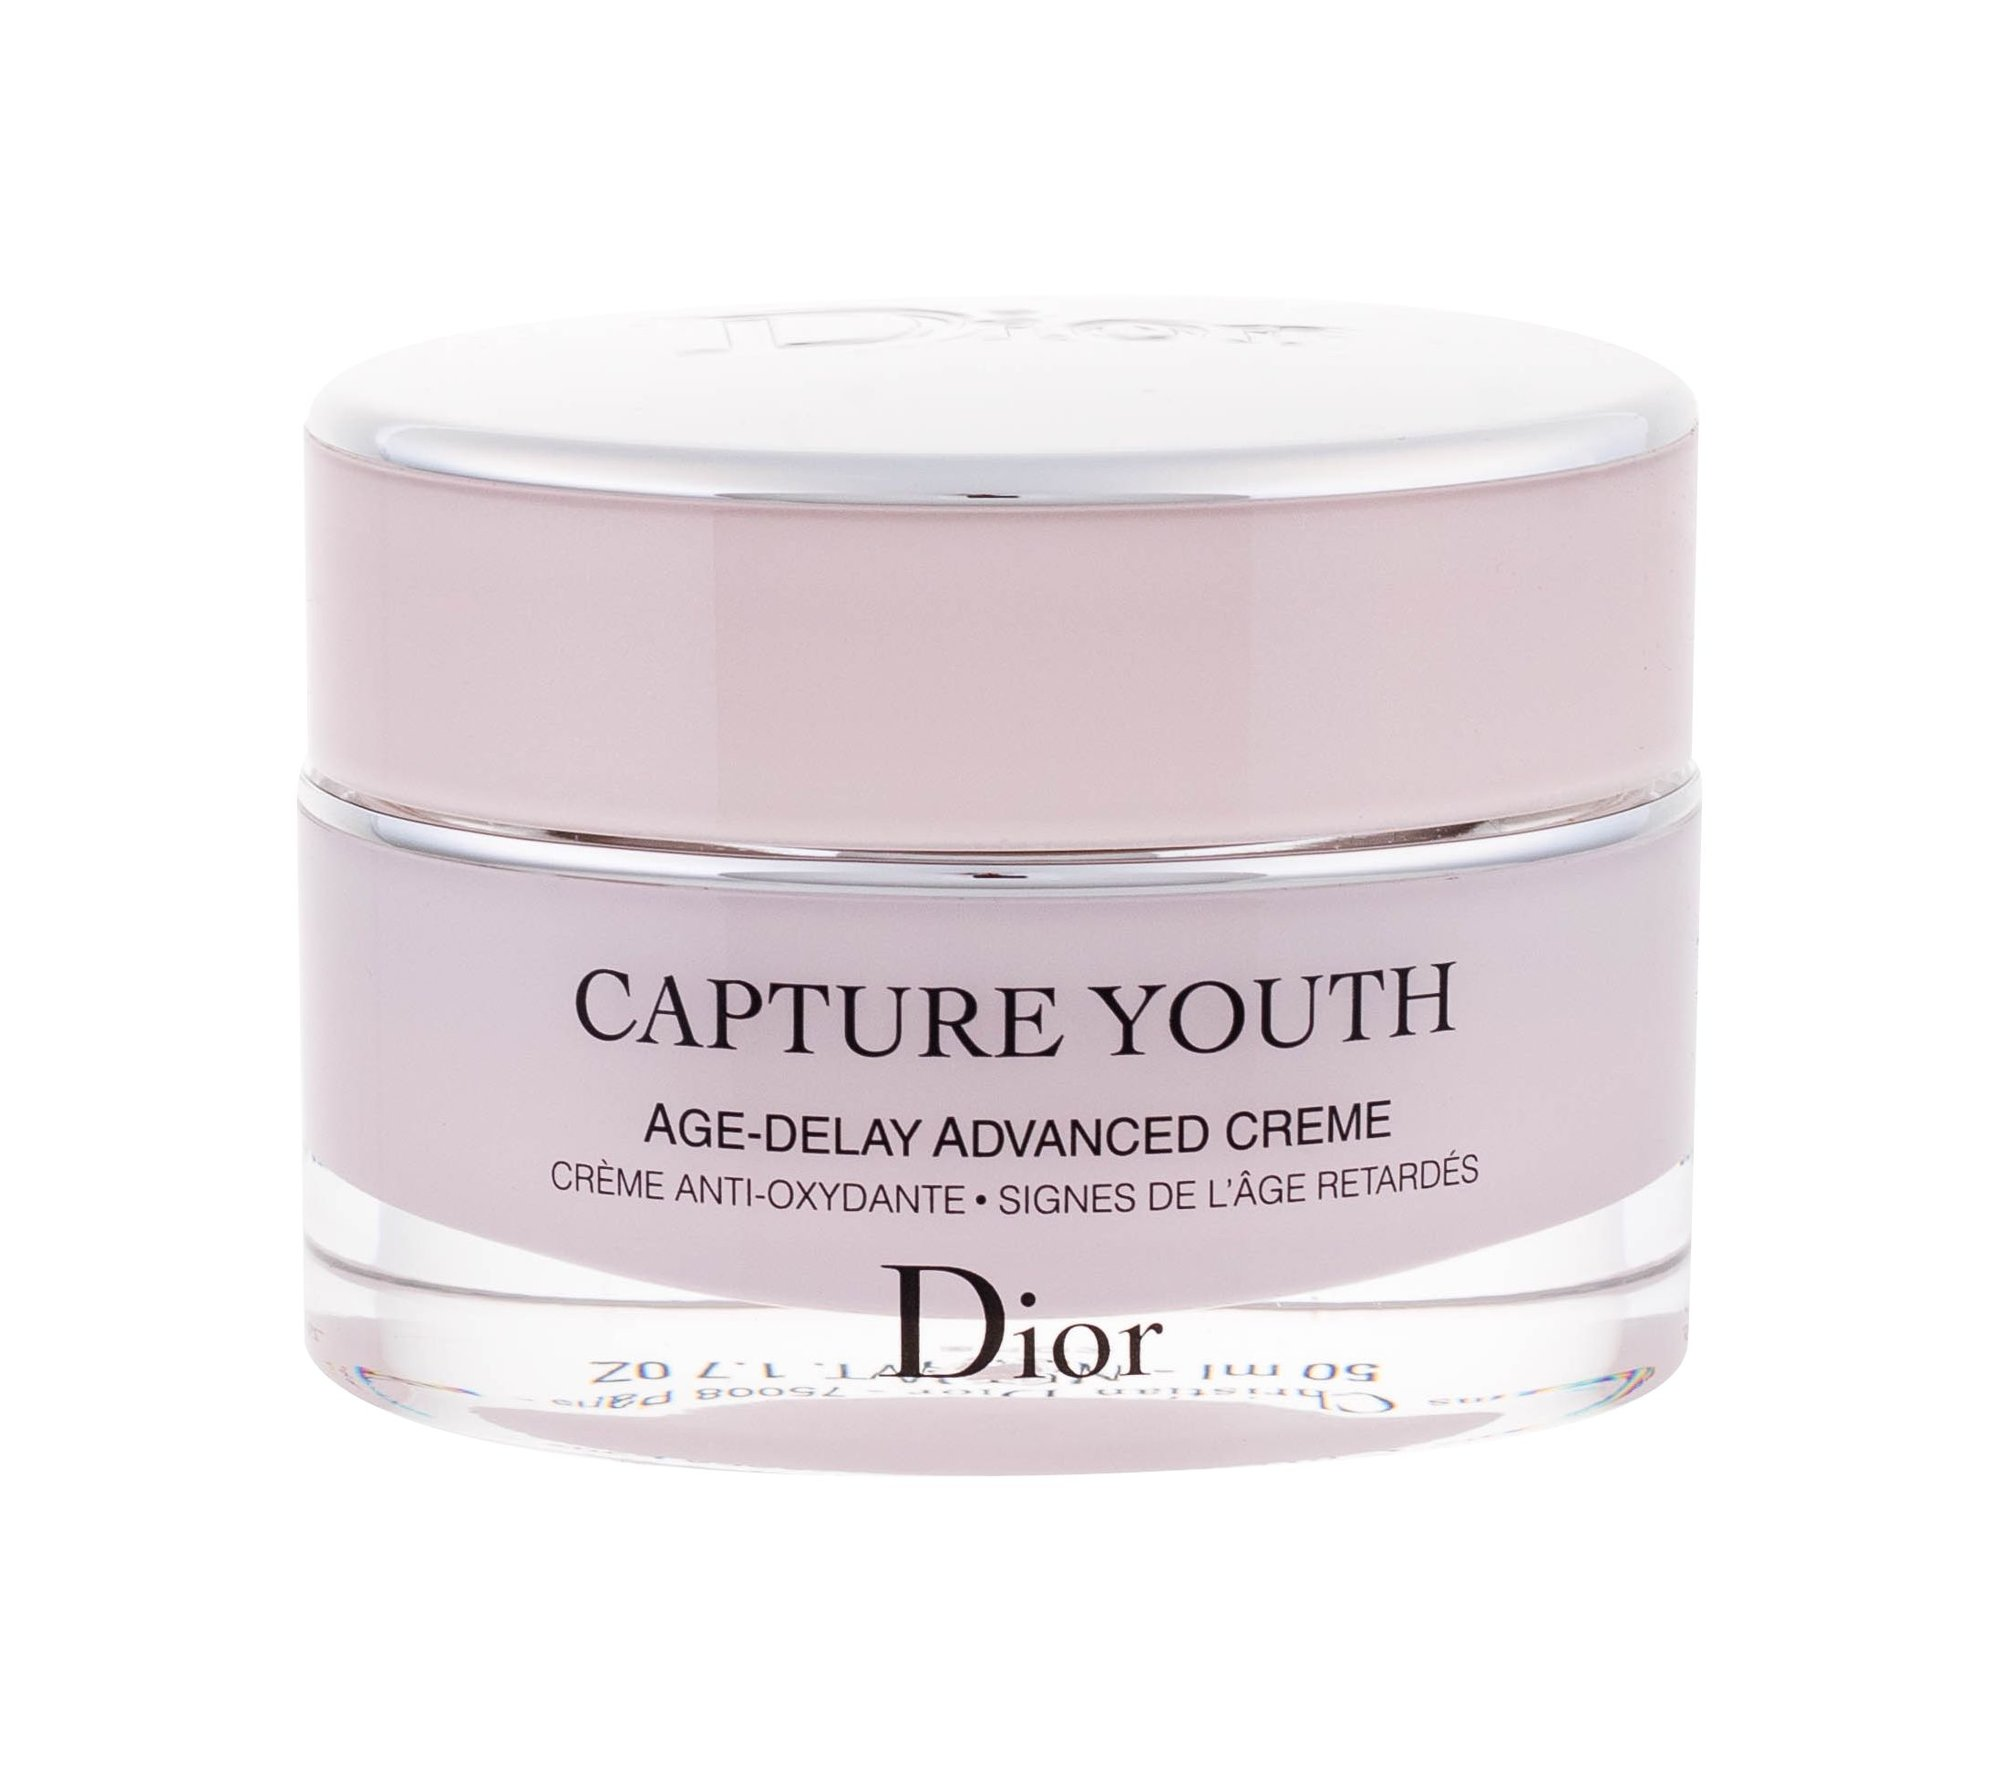 Christian Dior Capture Youth Day Cream 50ml